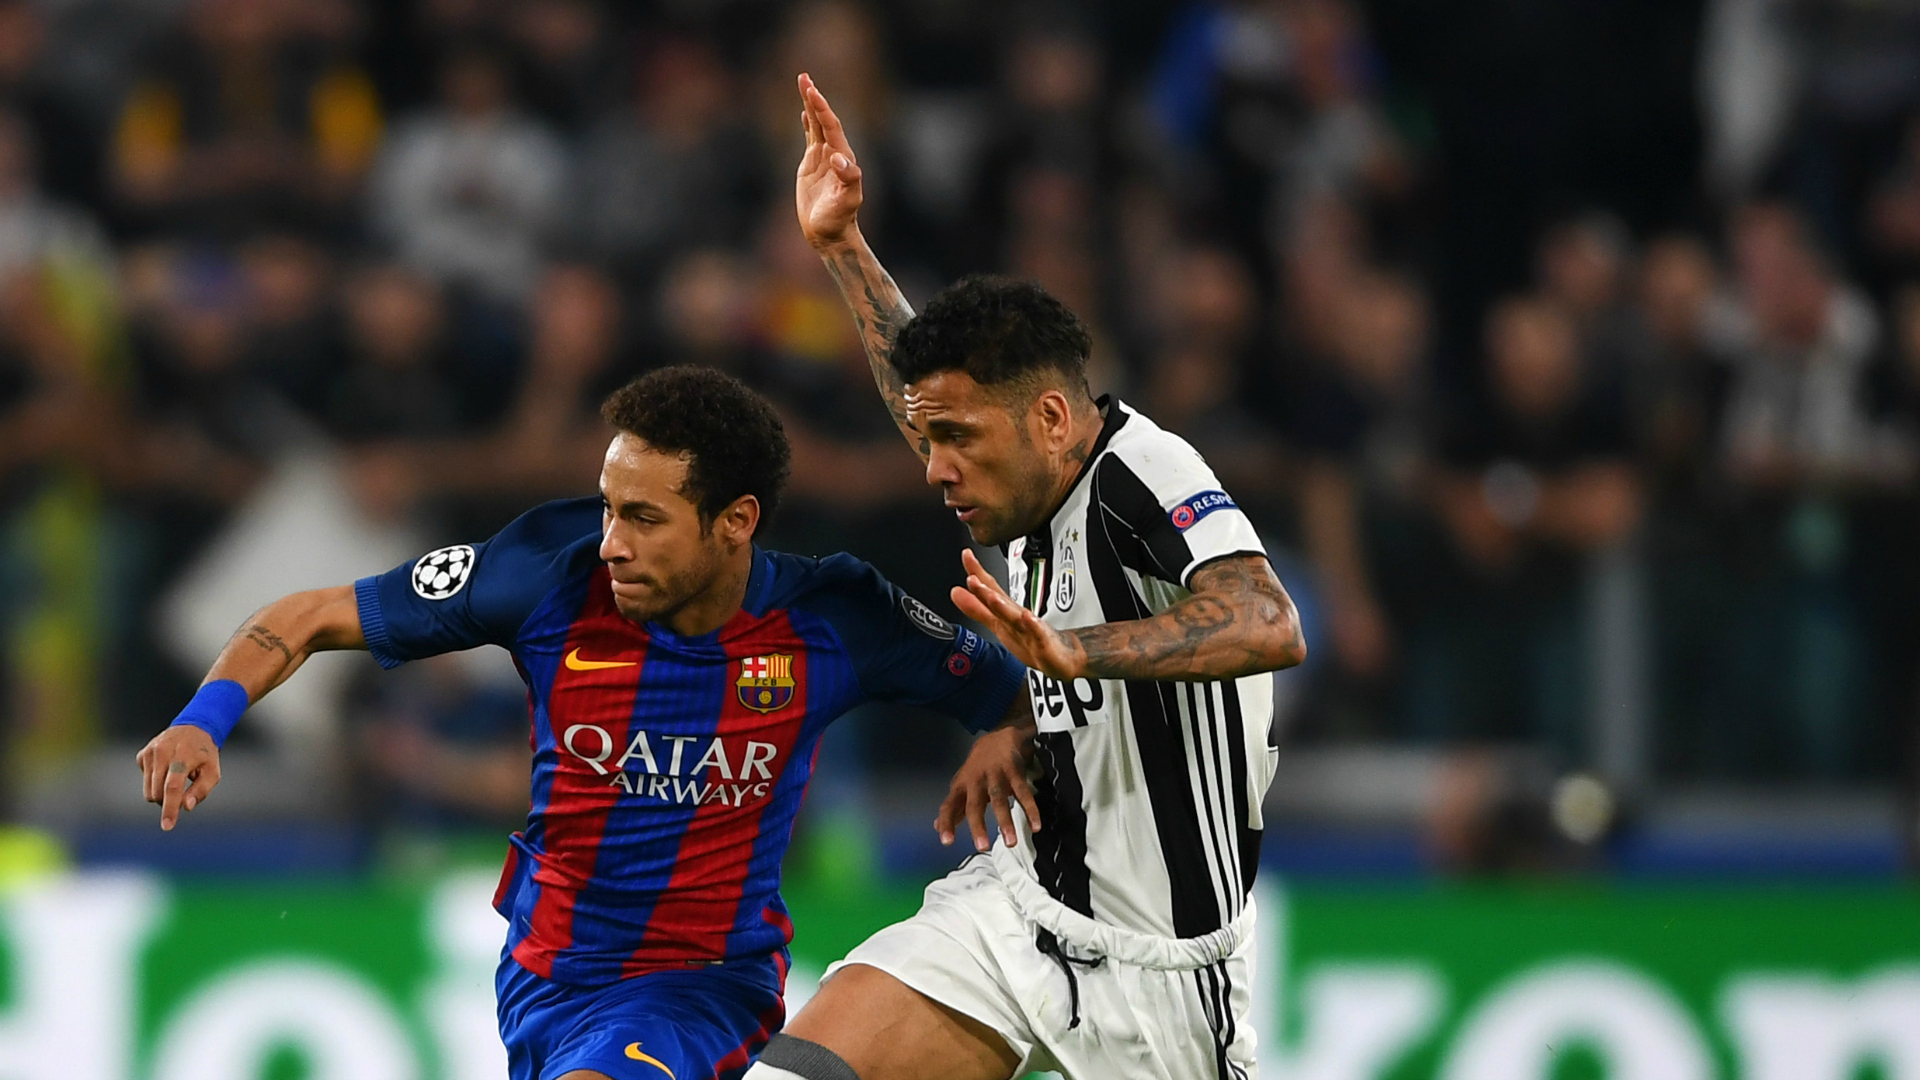 People seem convinced about Paulo Dybala's next club after Barcelona performance